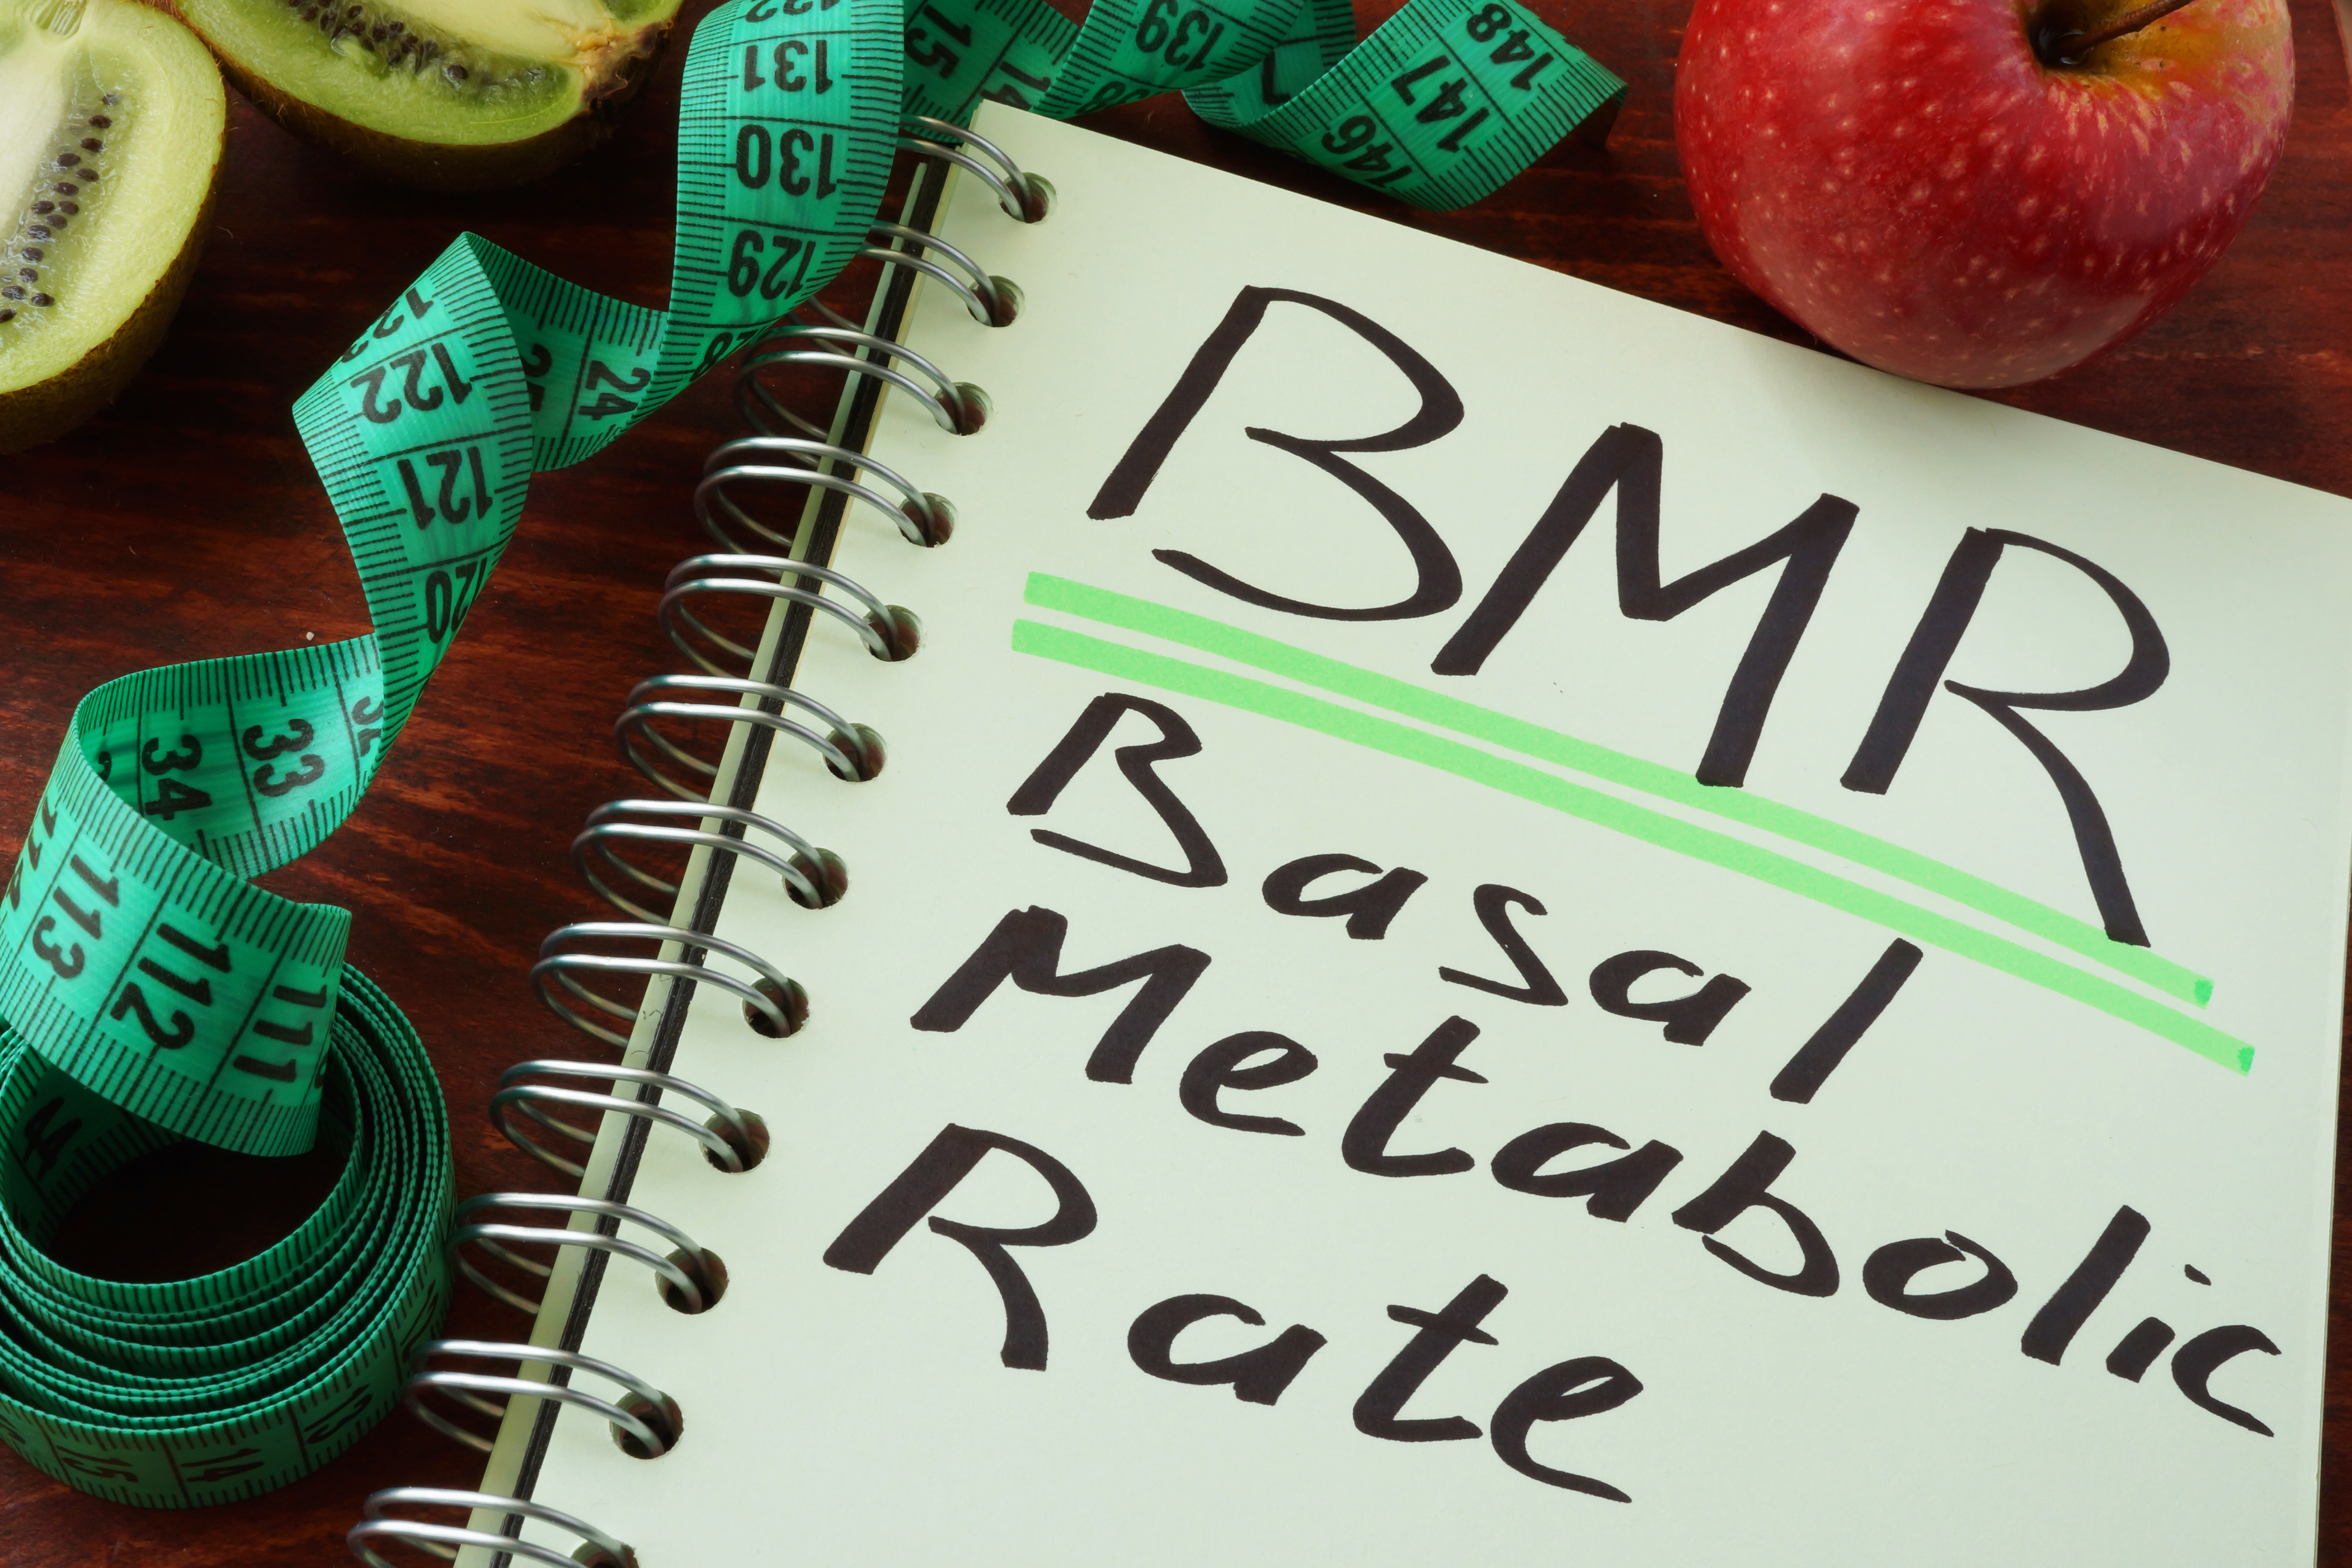 how to figure out basal metabolic rate